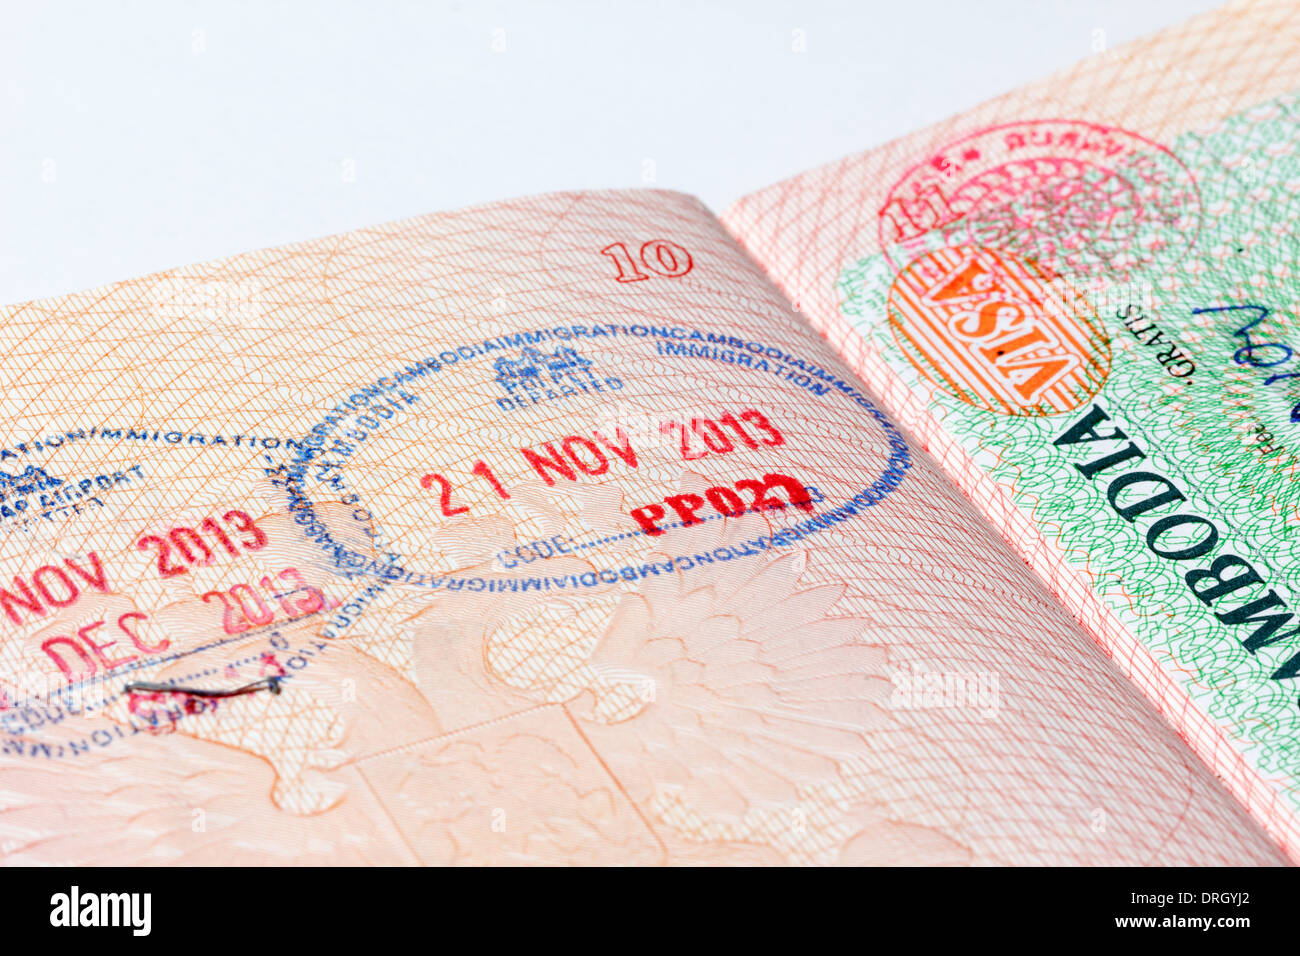 travel to schengen area with a refugee travel document